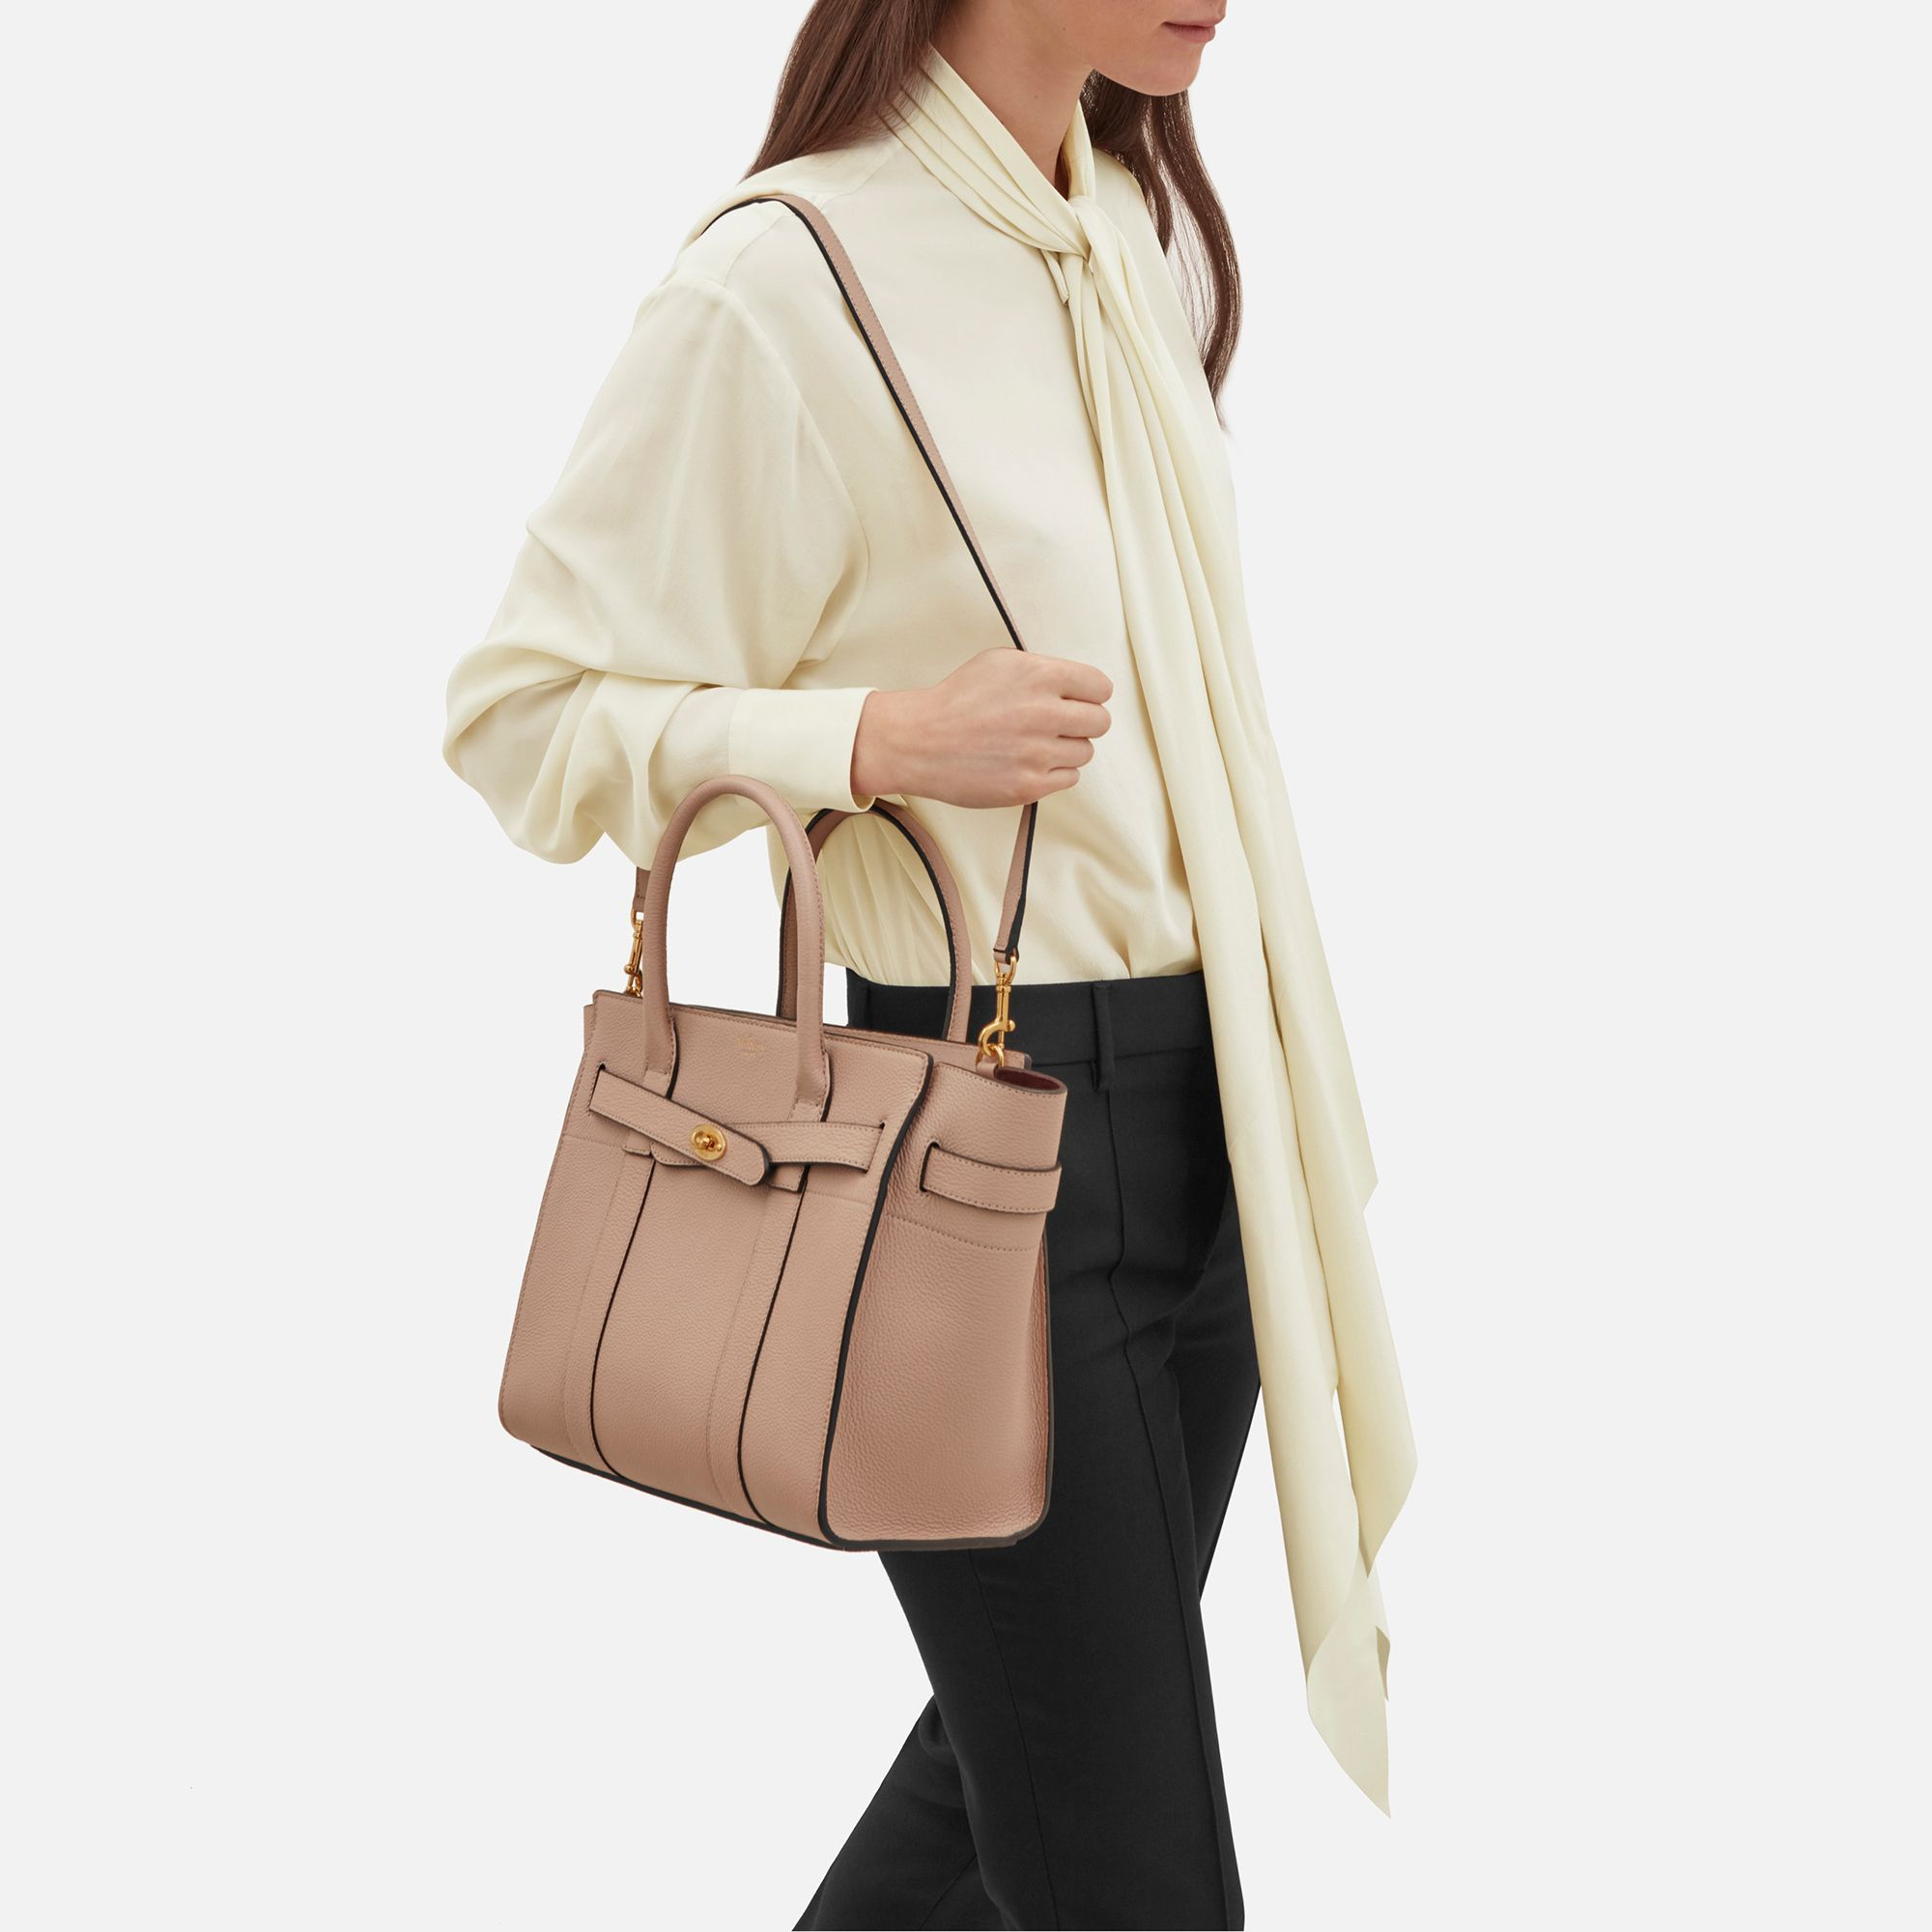 77f28b664383 Shop the Small Zipped Bayswater in Rosewater Leather at Mulberry.com. The  Bayswater is our most iconic bag